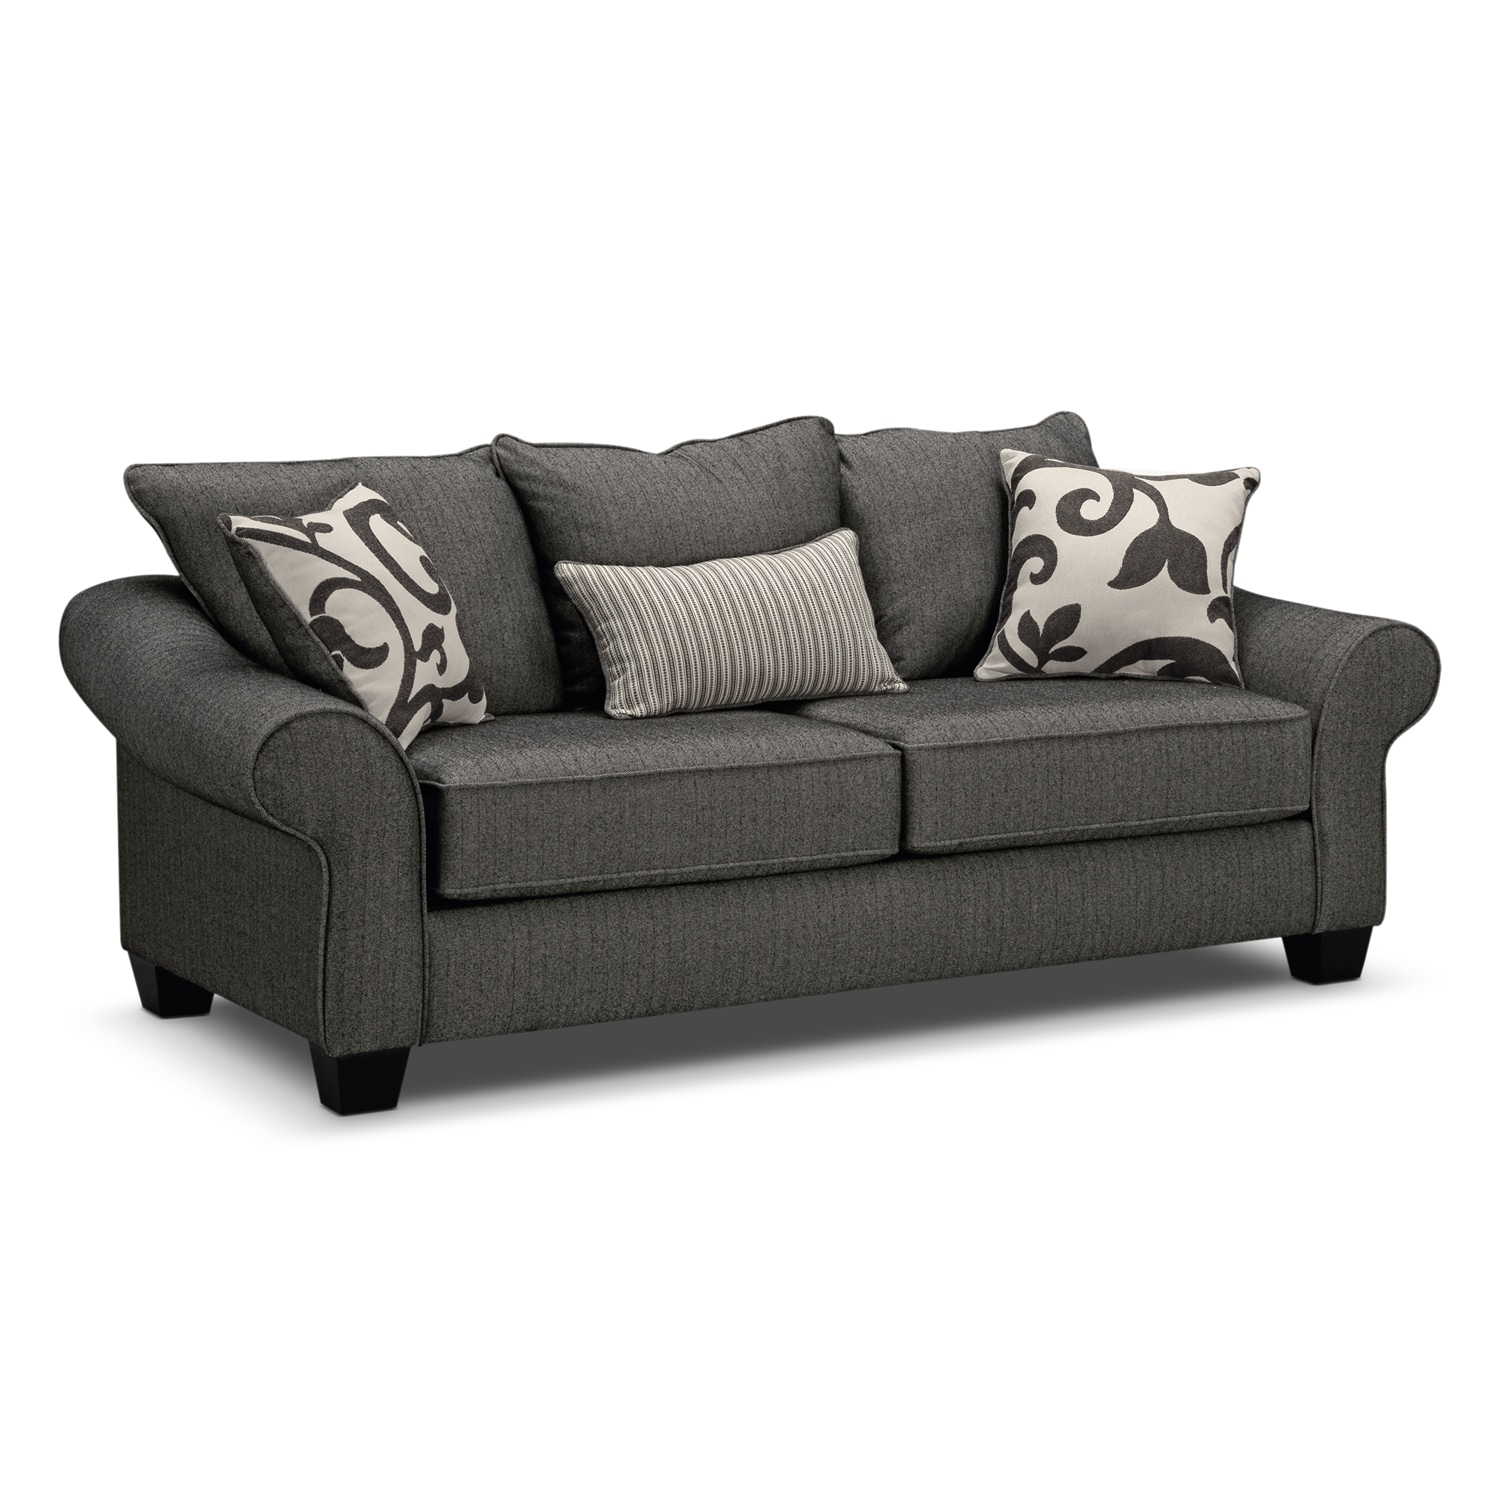 Colette sofa gray american signature furniture for Signature furniture